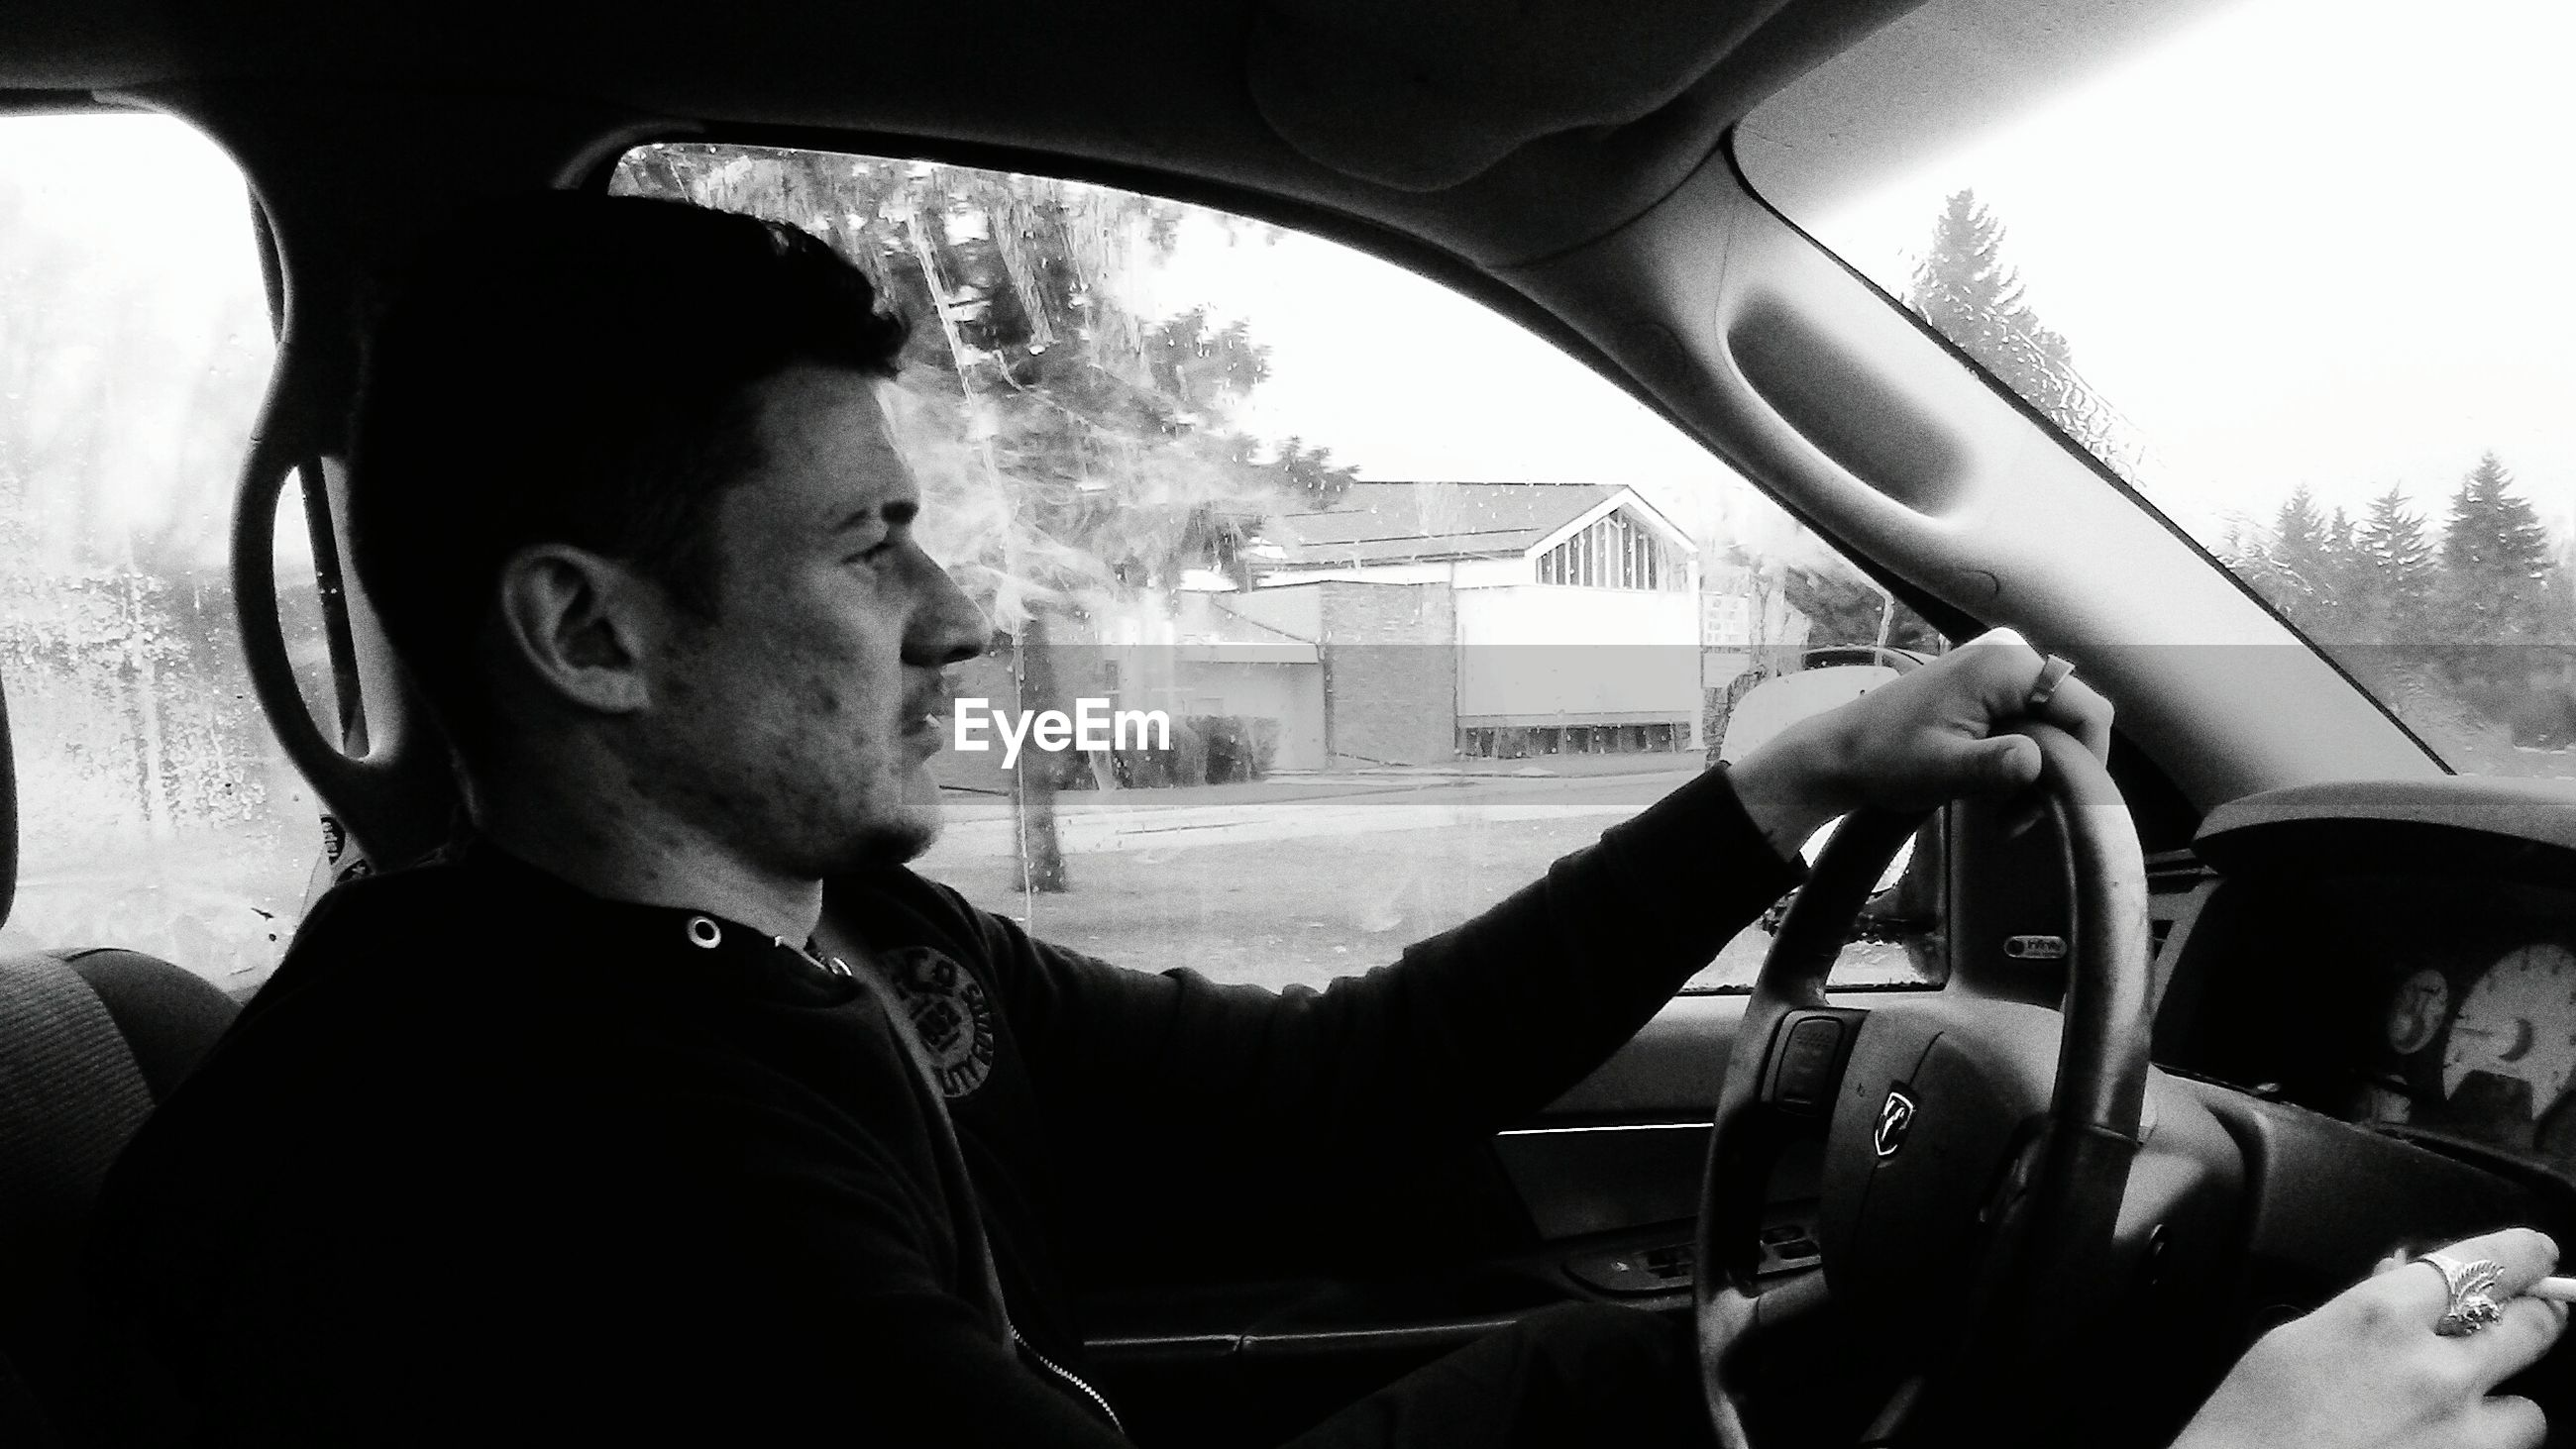 car, transportation, car interior, one person, only men, mode of transport, land vehicle, driving, adults only, vehicle interior, one man only, headshot, mature adult, steering wheel, adult, men, people, day, close-up, businessman, indoors